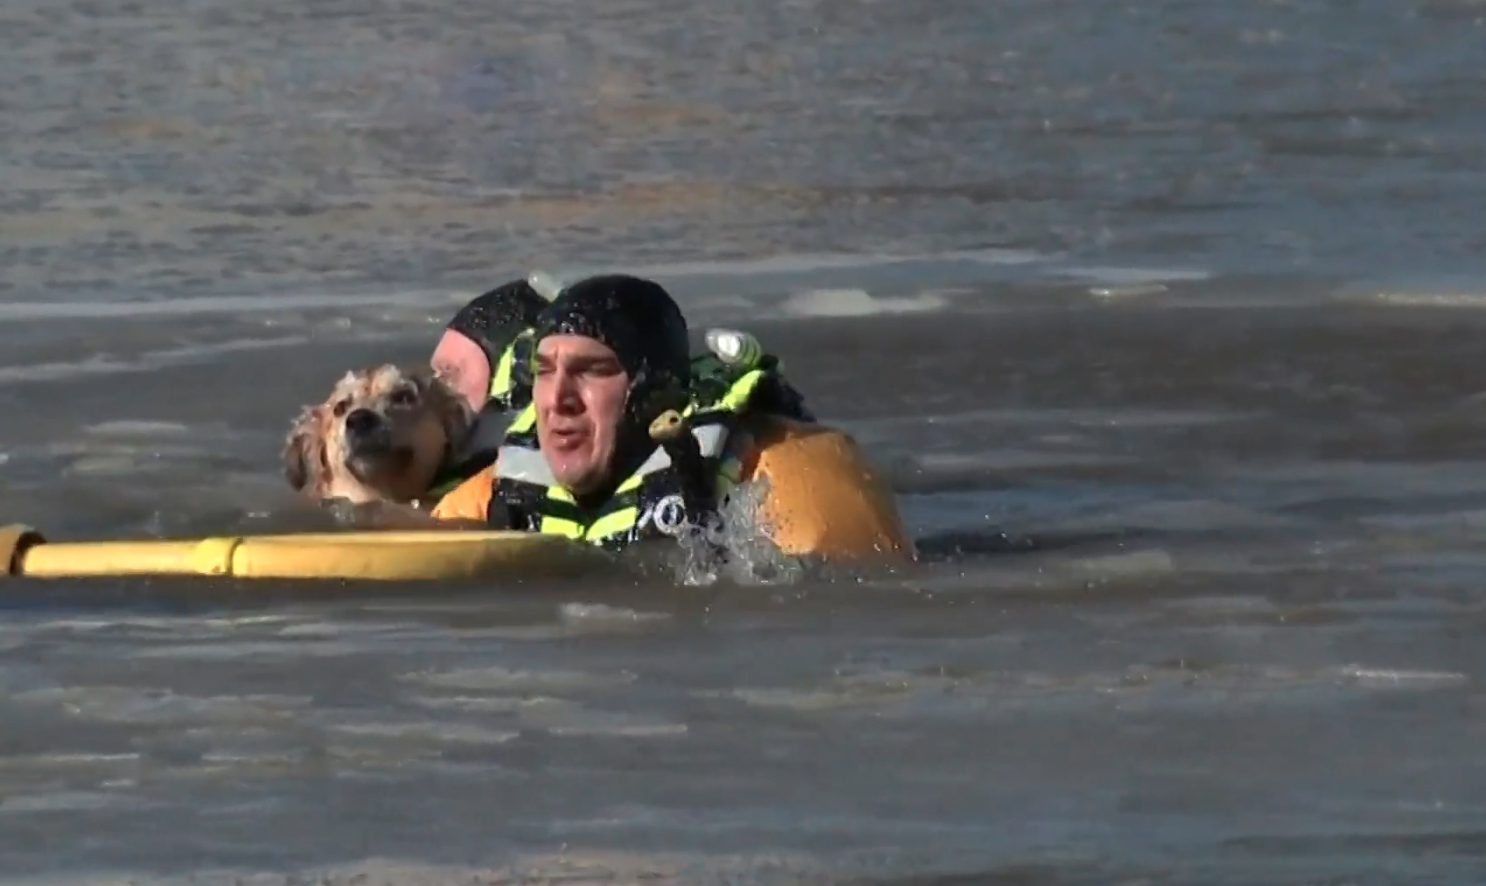 Video Shows Daring Rescue Crews Swimming Through Freezing Water To Save Stranded Dog's Life